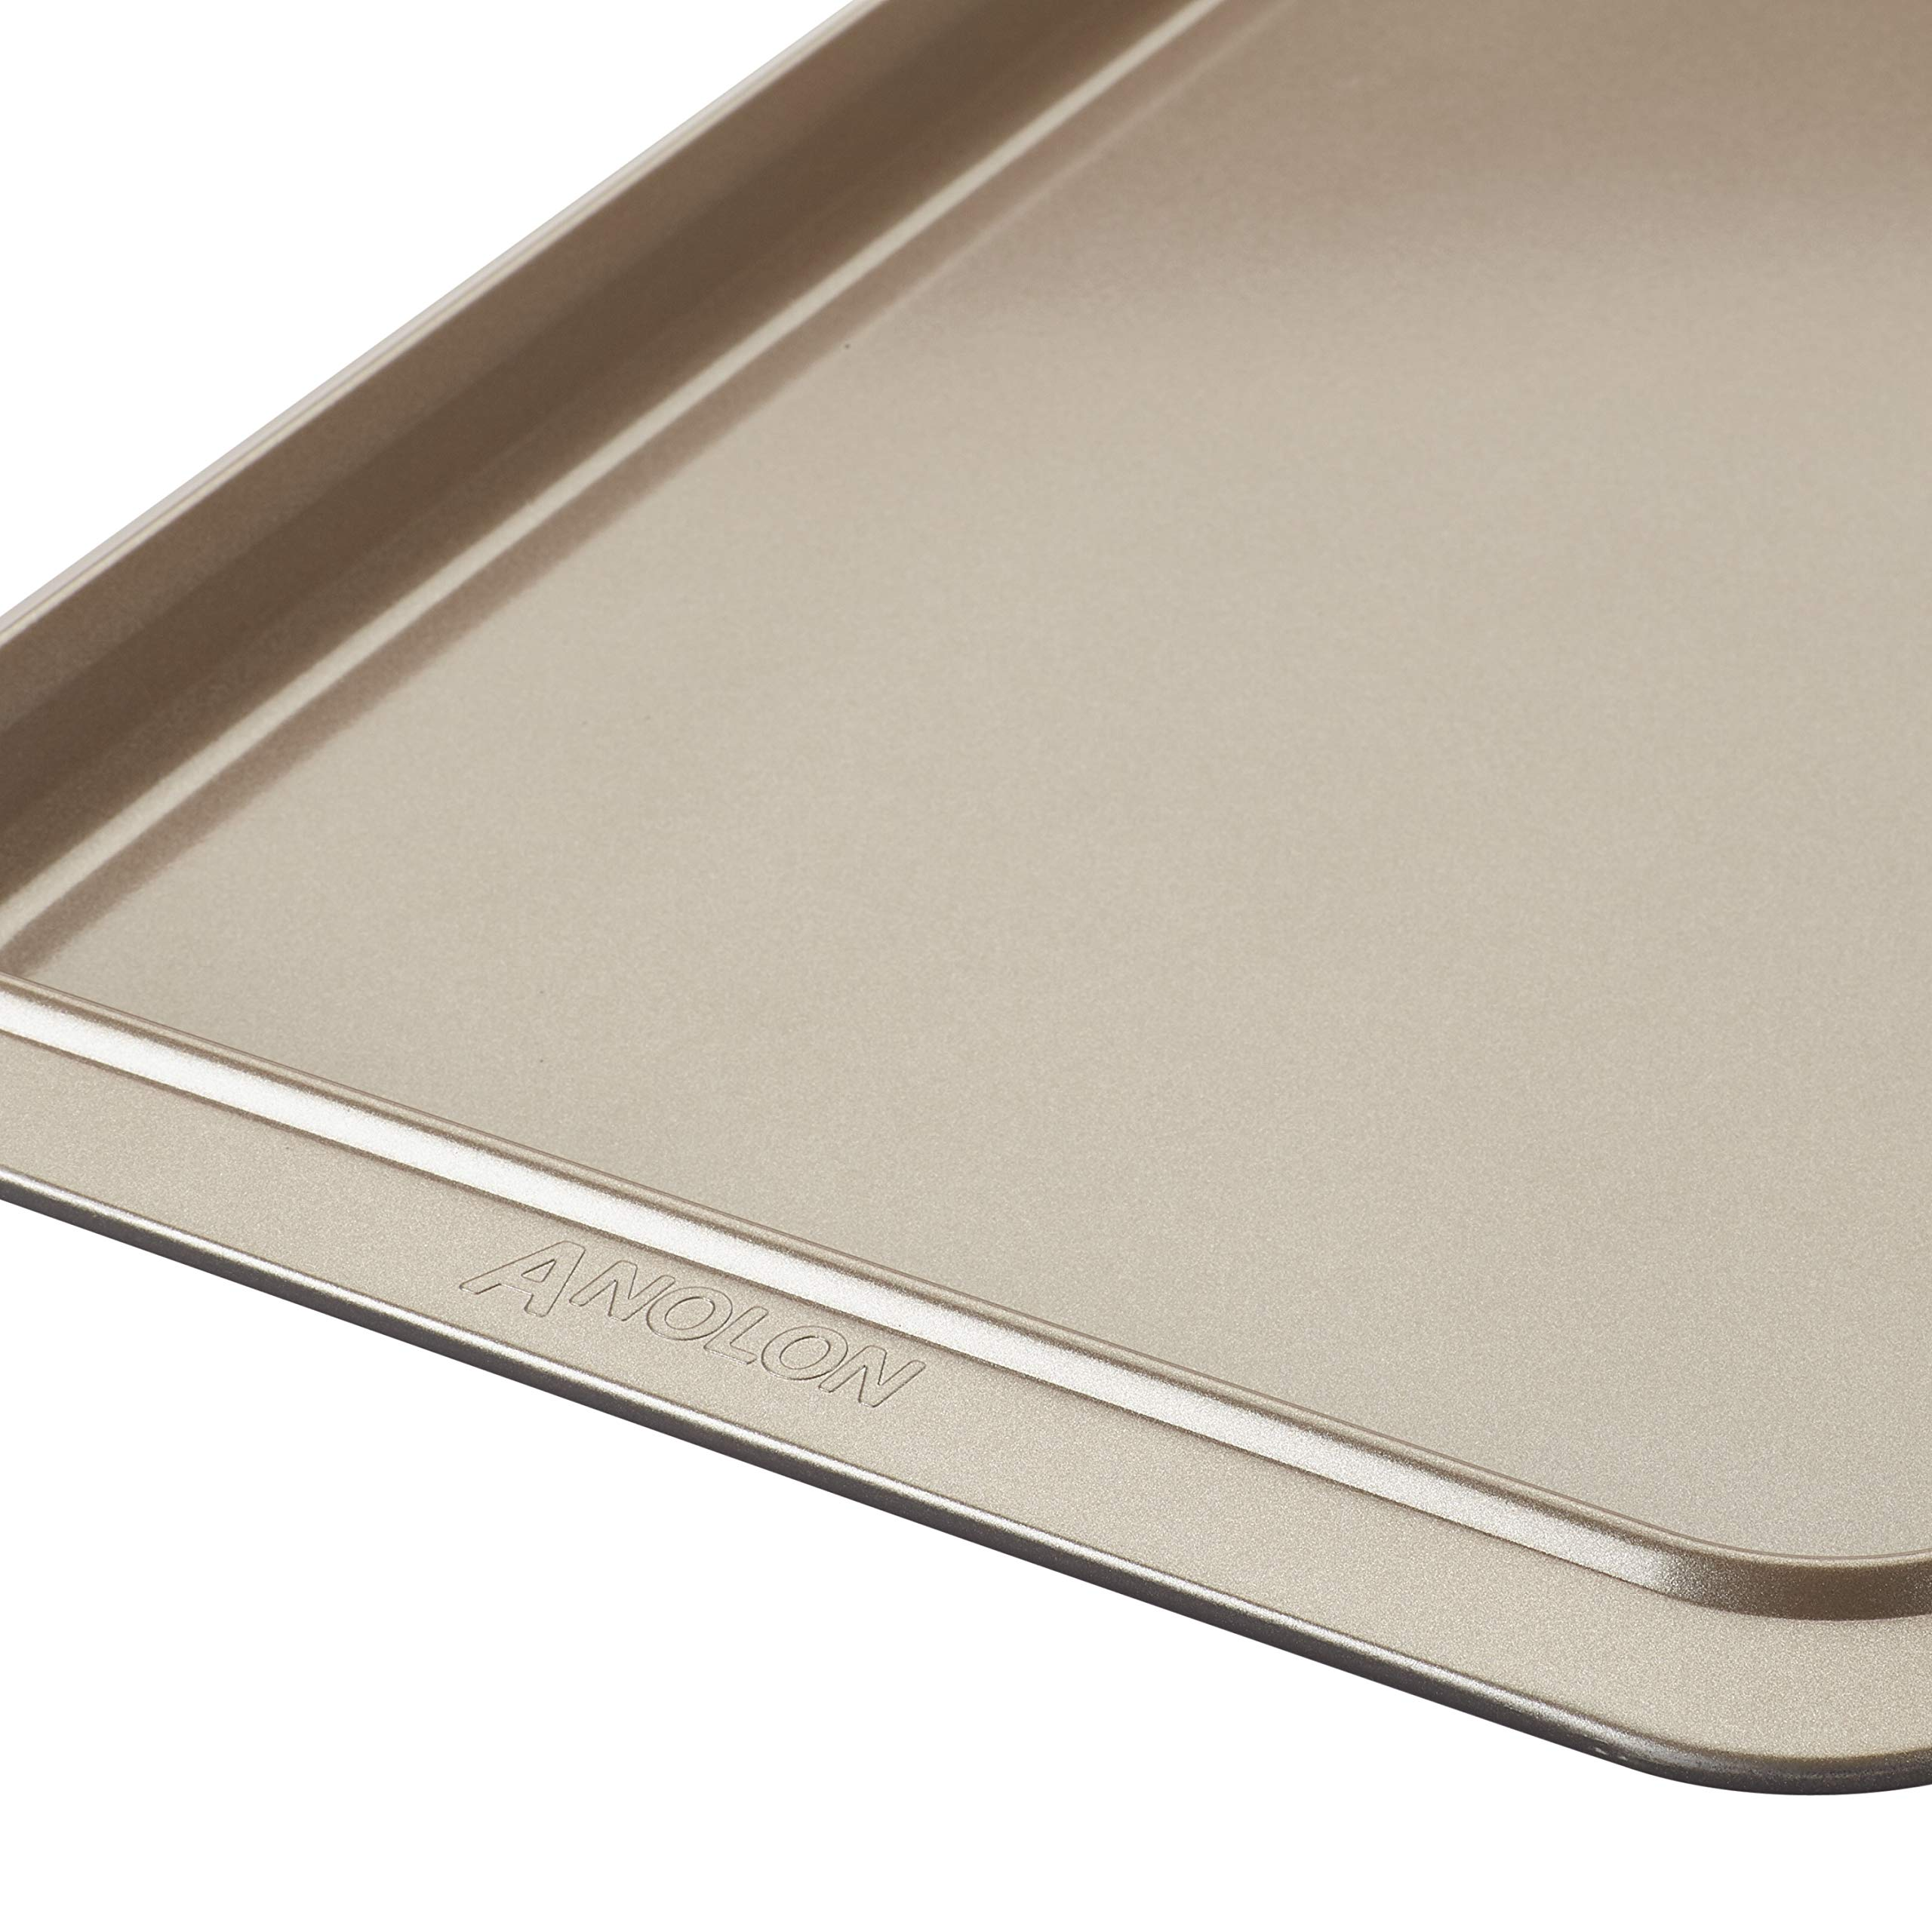 Anolon Eminence Nonstick Bakeware Cookie Pan, 11-Inch x 17-Inch, Onyx with Umber Interior by Anolon (Image #4)